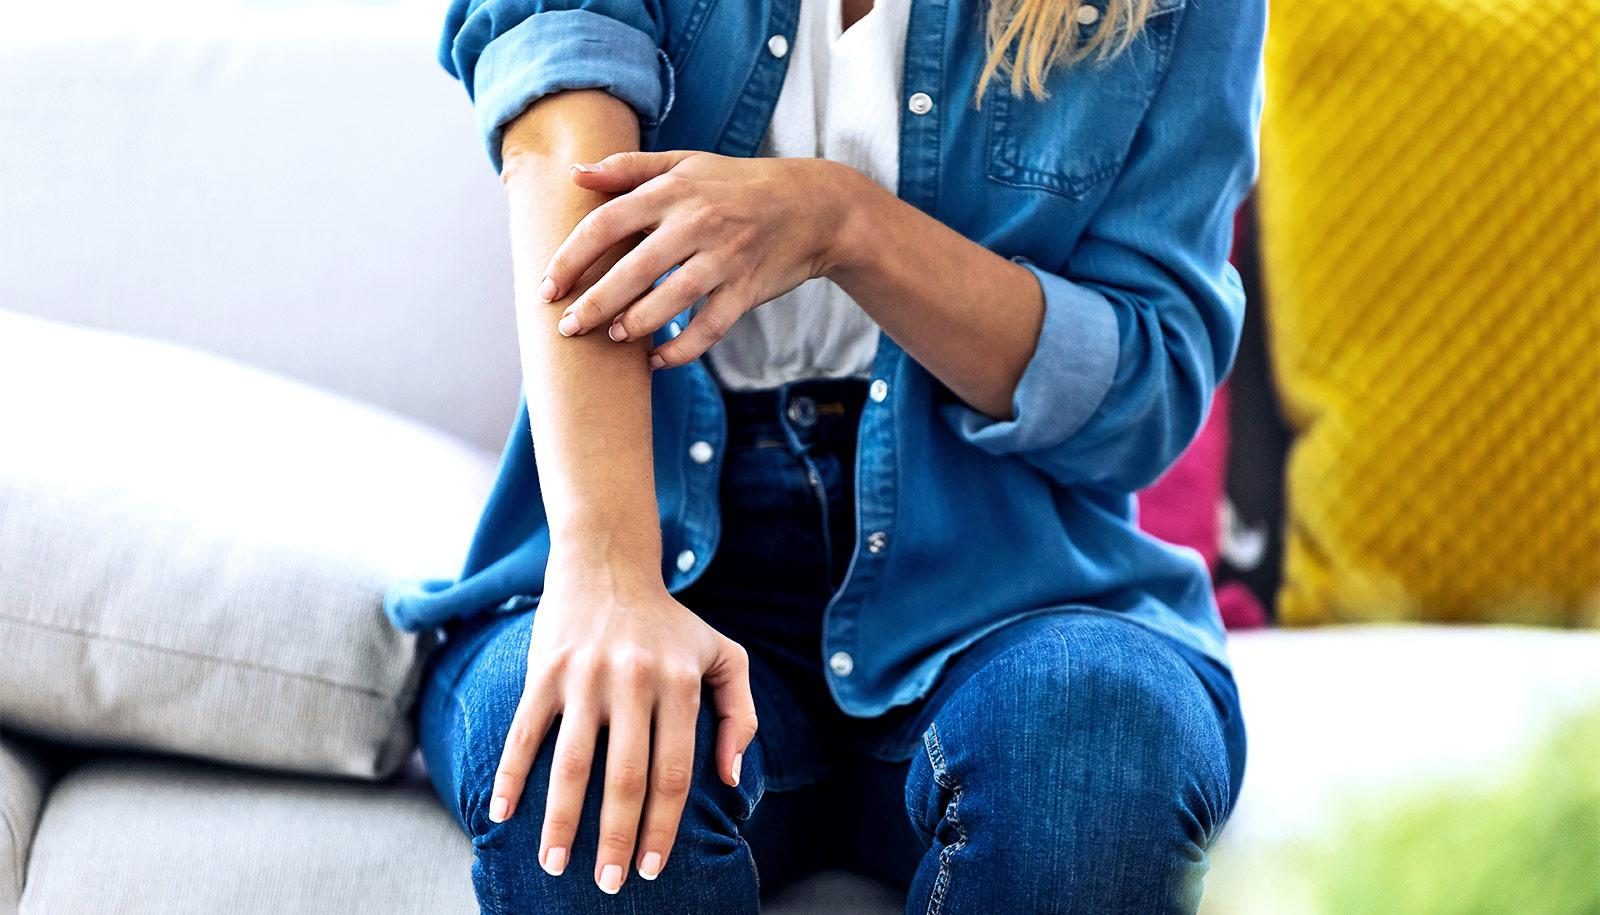 A woman touches the skin on her arm